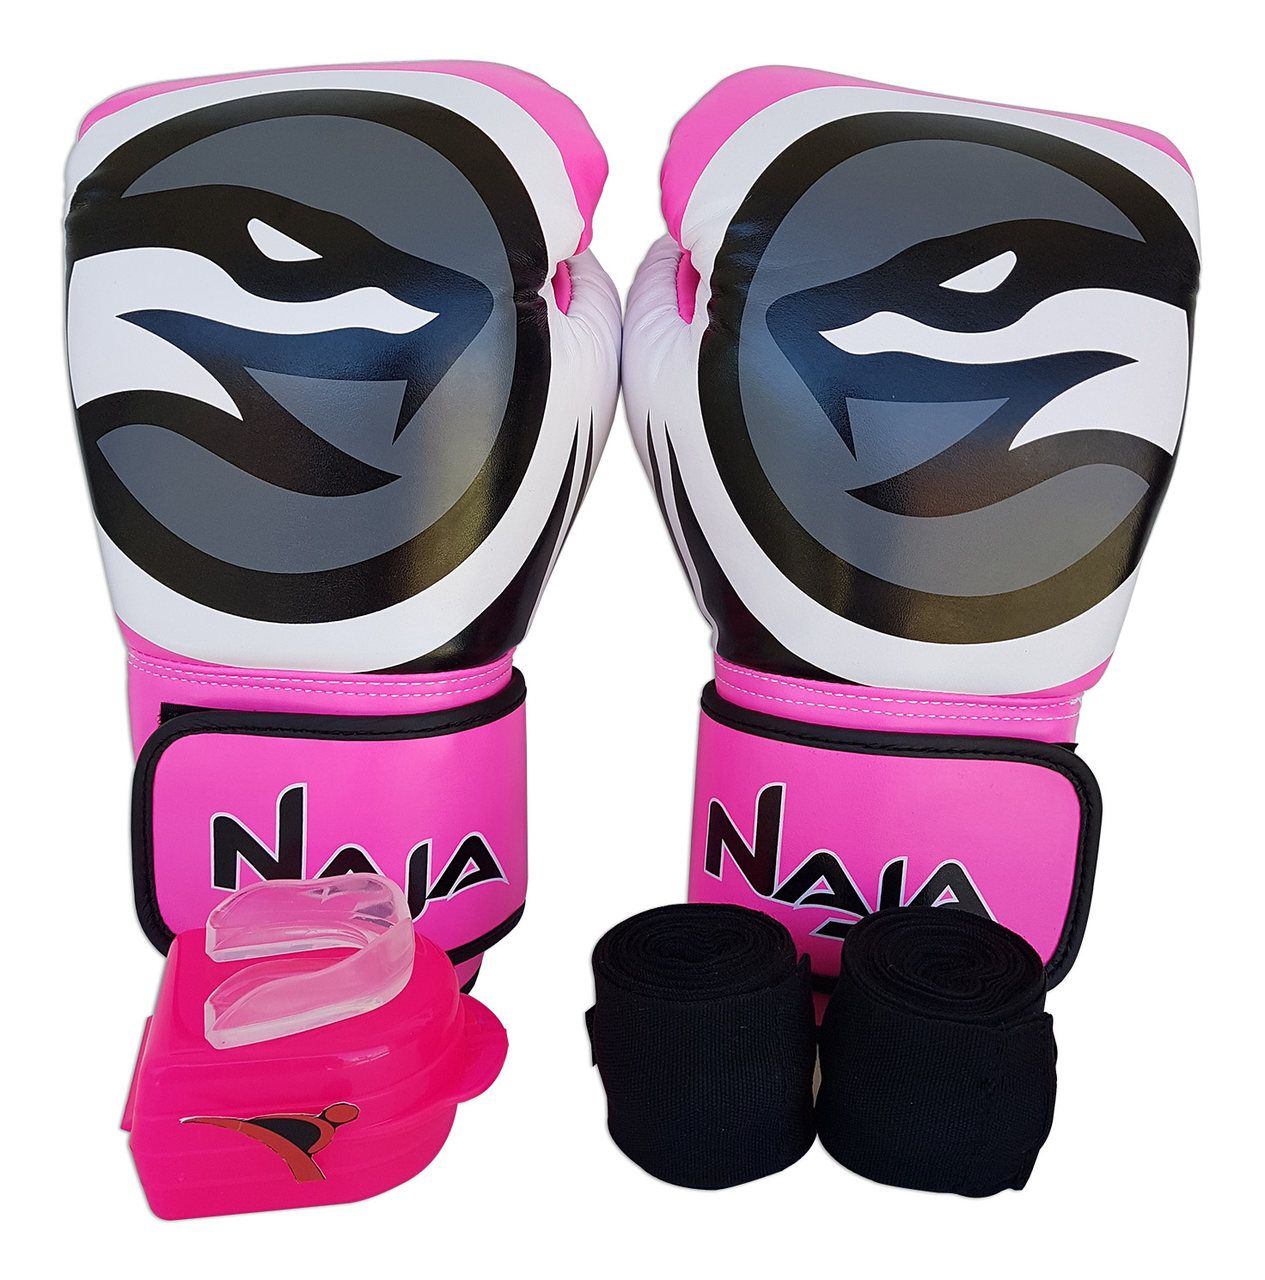 Kit De Boxe / Muay Thai Feminino 14oz - Pink - Colors - Naja  - PRALUTA SHOP